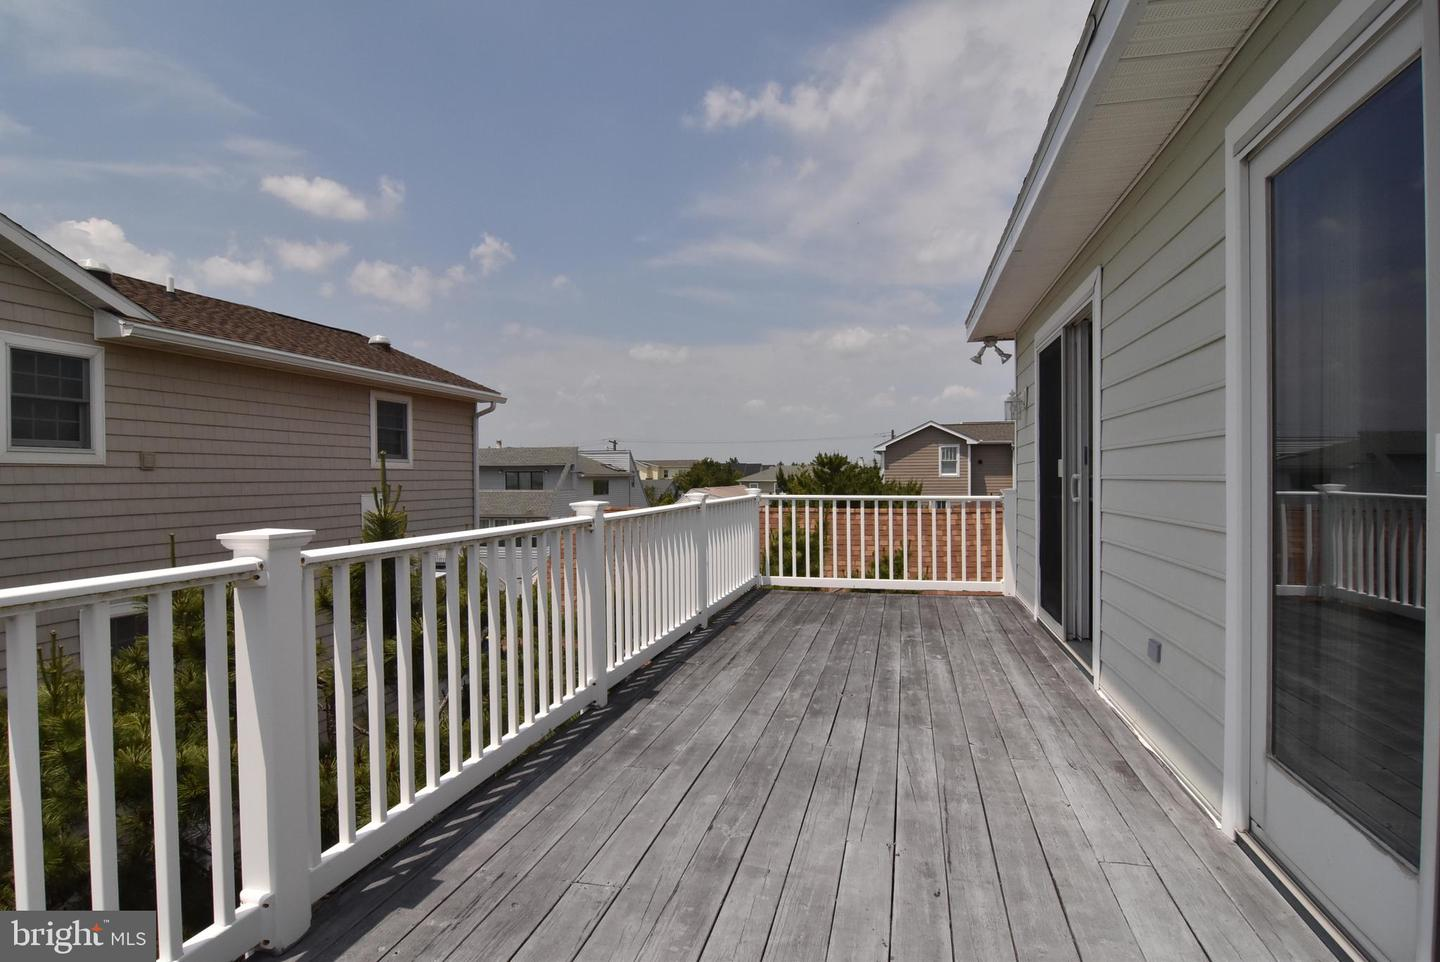 DESU141210-301754685900-2019-05-30-08-28-54 87 N Atlantic Ave | Bethany Beach, De Real Estate For Sale | MLS# Desu141210  - Suzanne Macnab